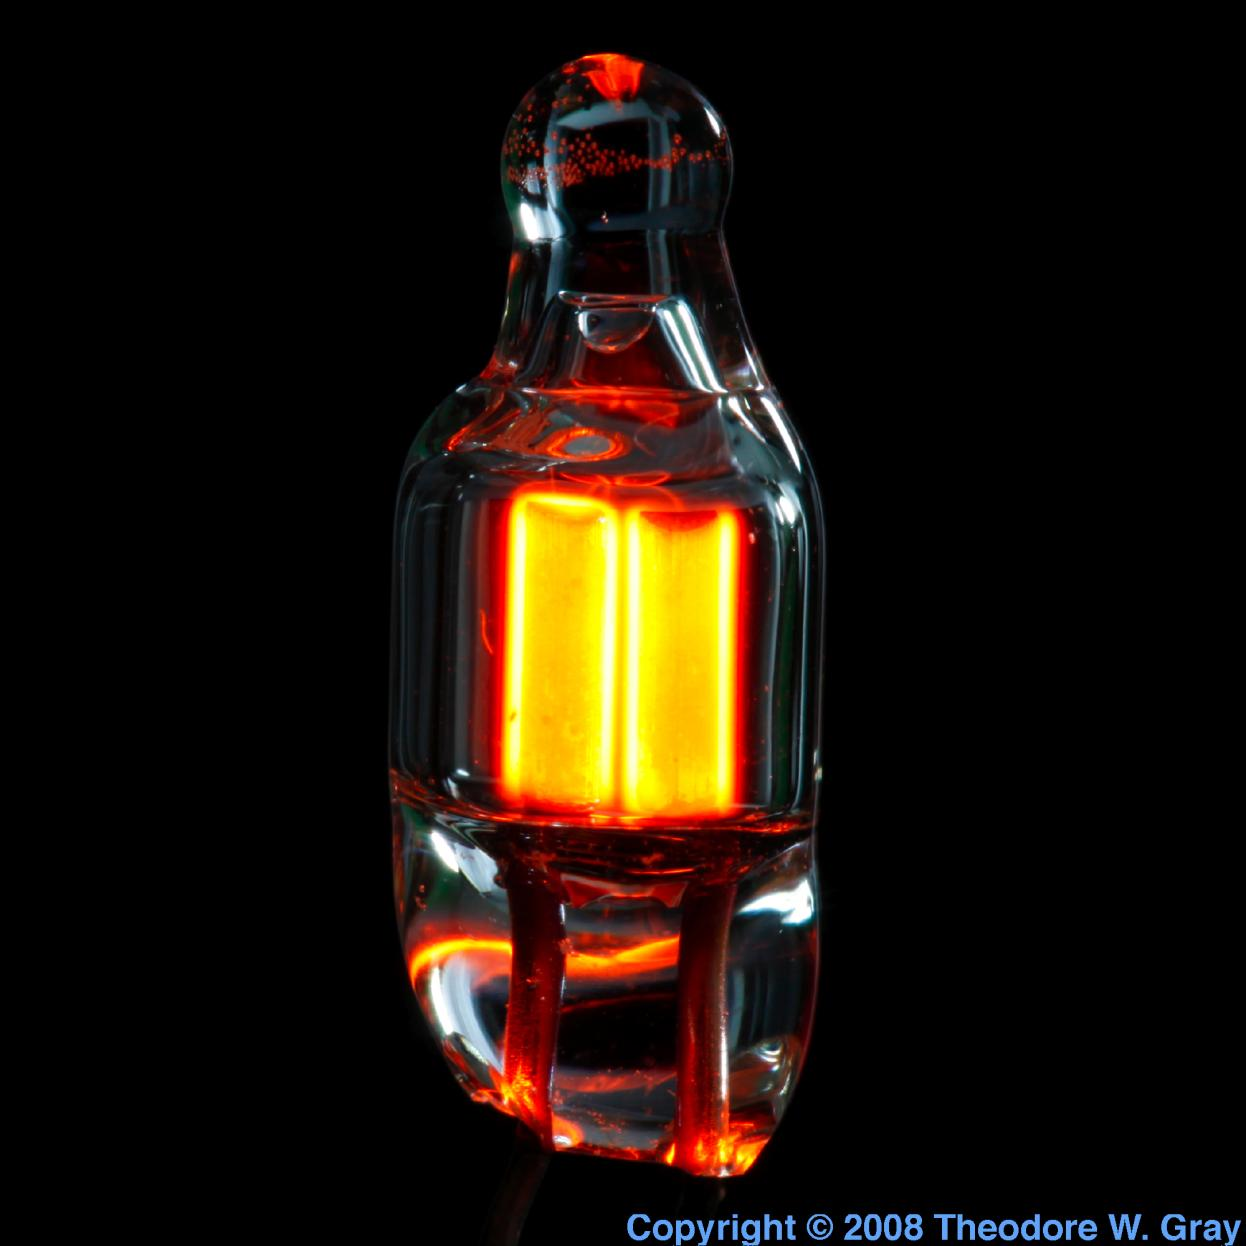 Facts pictures stories about the element neon in the periodic table neon tiny neon bulb lit gamestrikefo Images